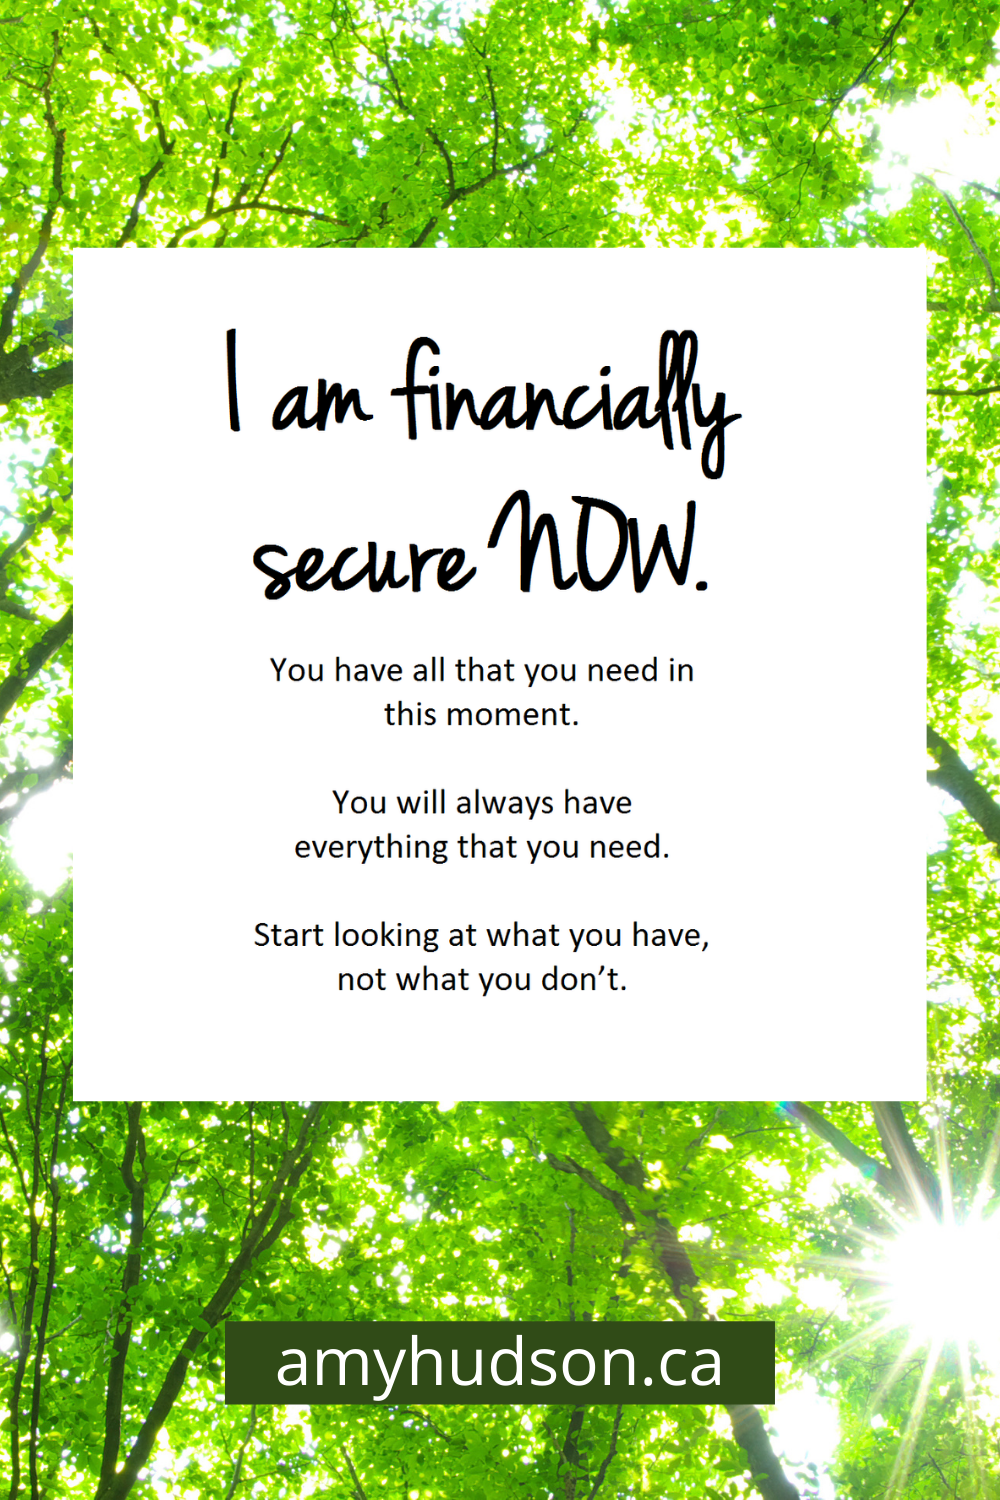 I am financially secure now.